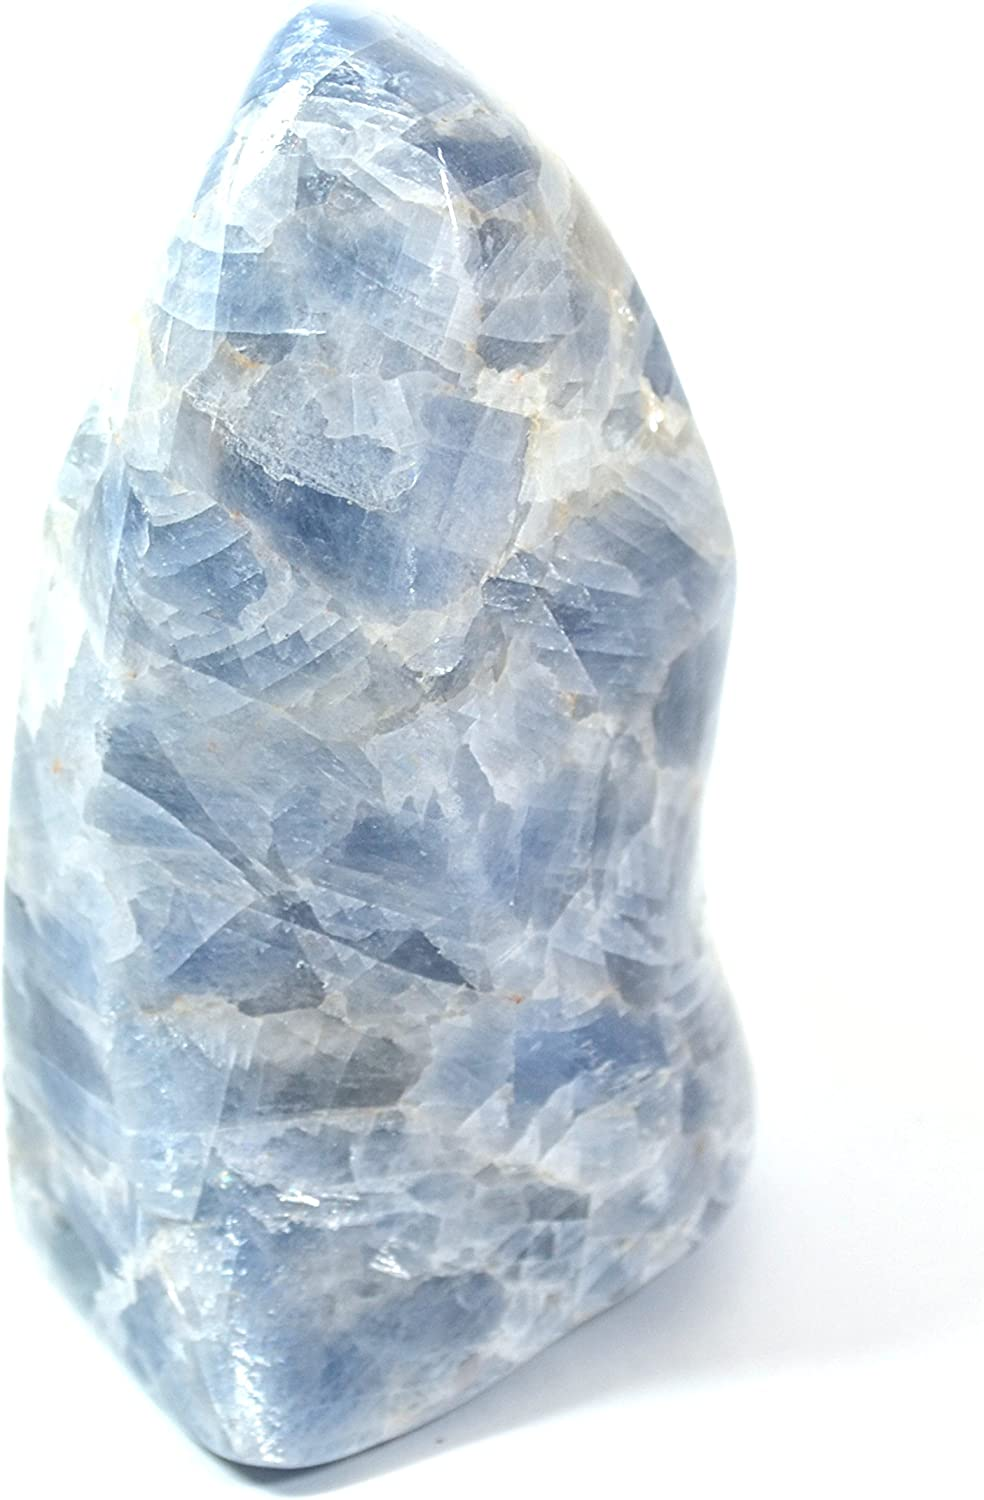 Sky Blue Calcite Flame Weighs 0.5-1kg Free Form 6 Tall The Artisan Mined Series by hBAR